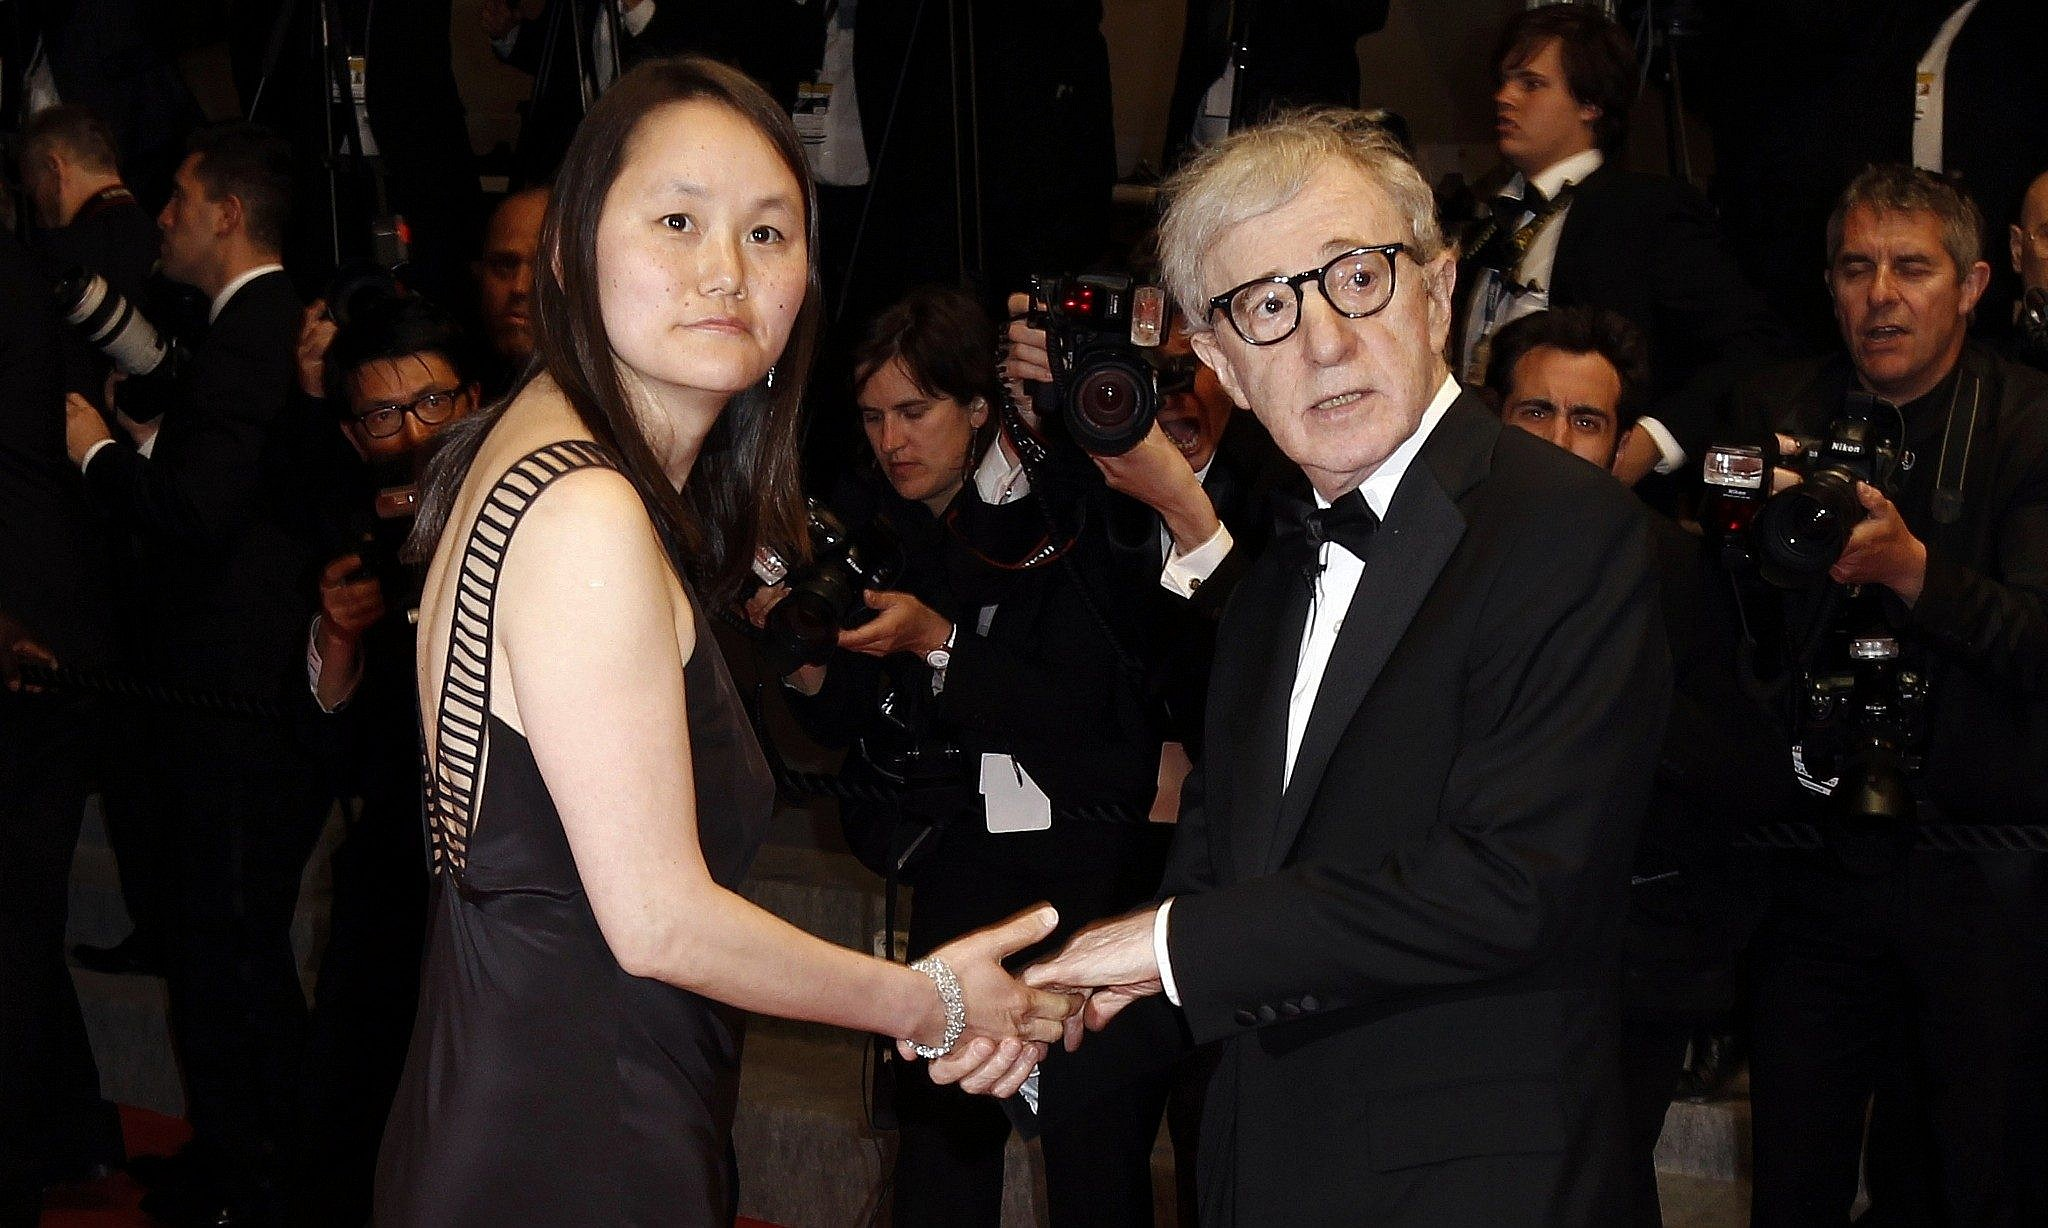 Dylan and Ronan Farrow Respond to New York Magazine Profile of Soon-Yi Previn